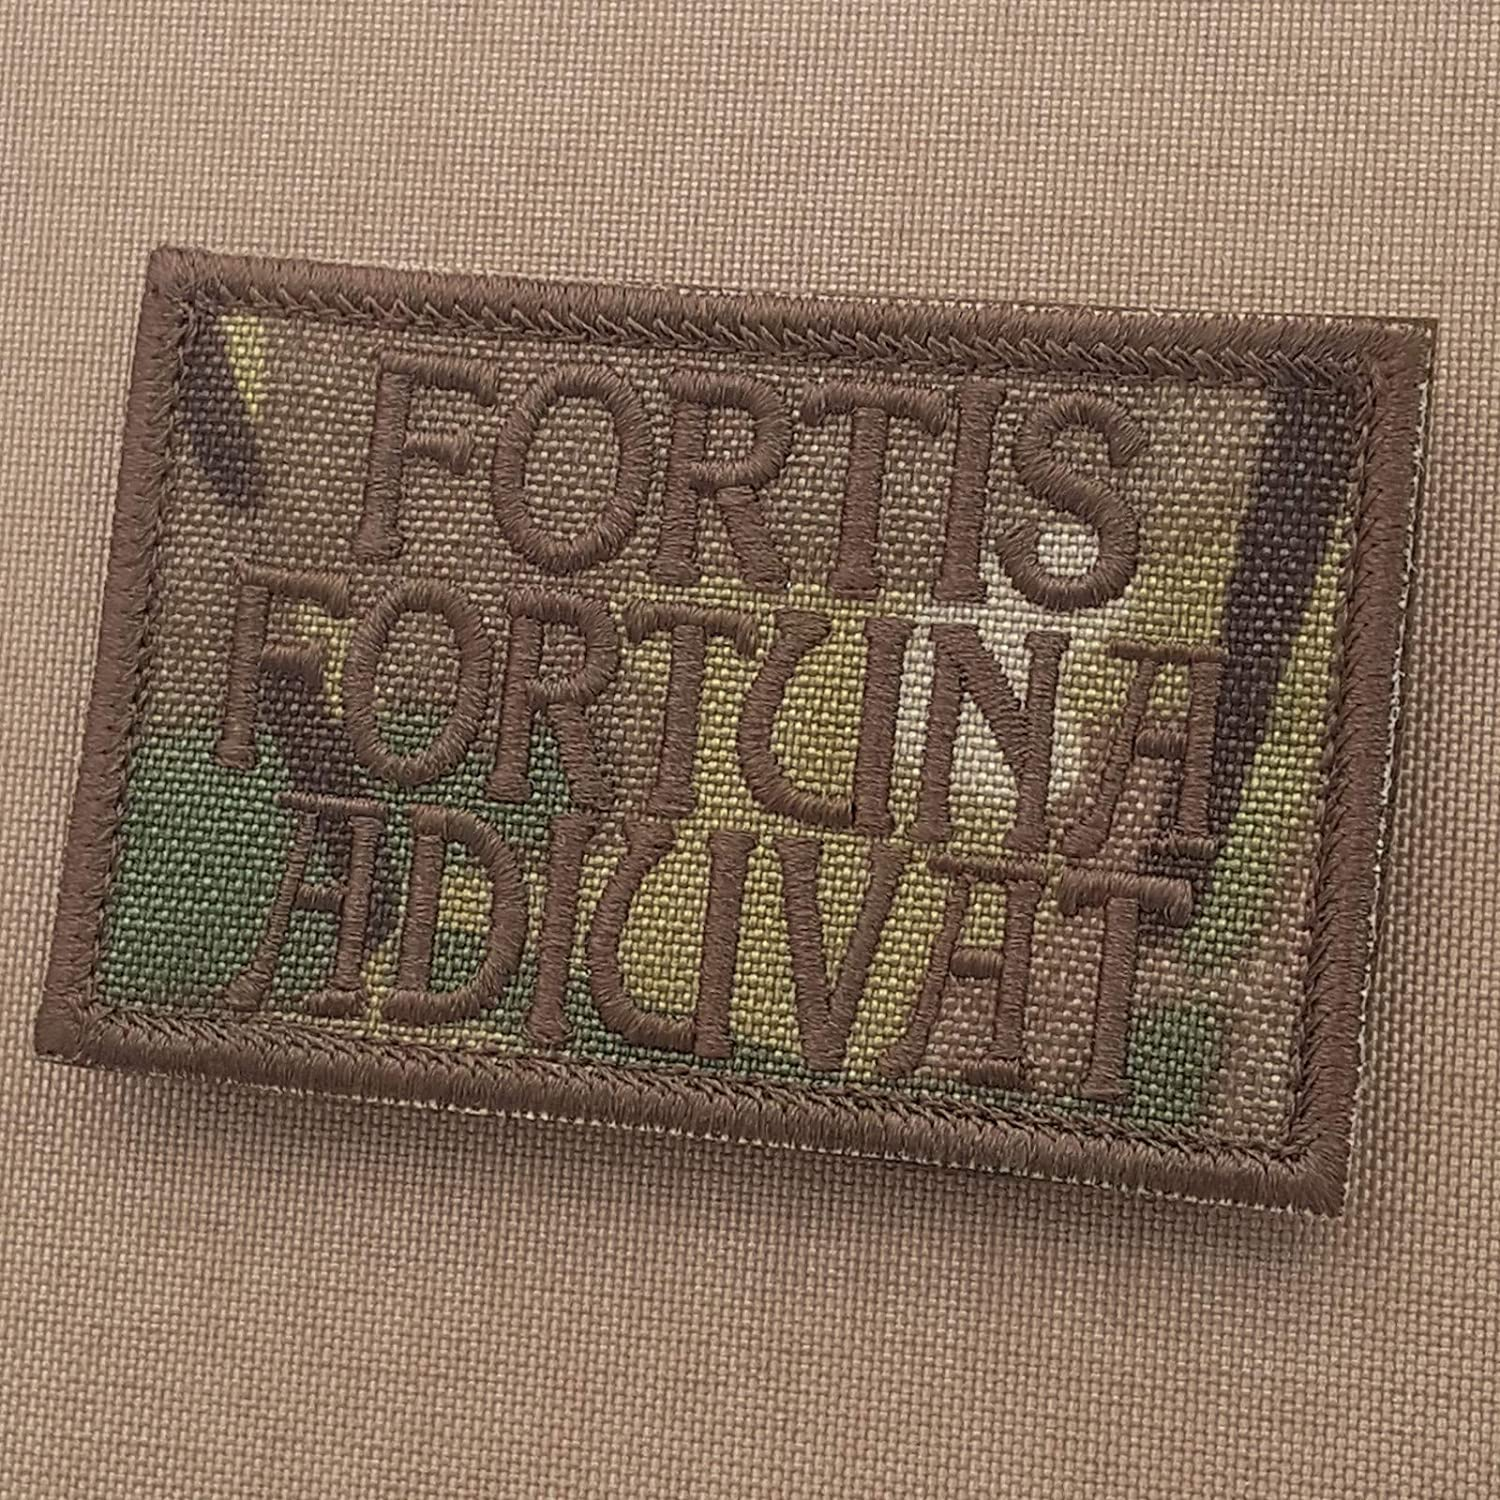 LEGEEON Multicam Fortis Fortuna Adiuvat 2x3.25 OCP John Wick Morale Tactical Military Touch Fastener Patch